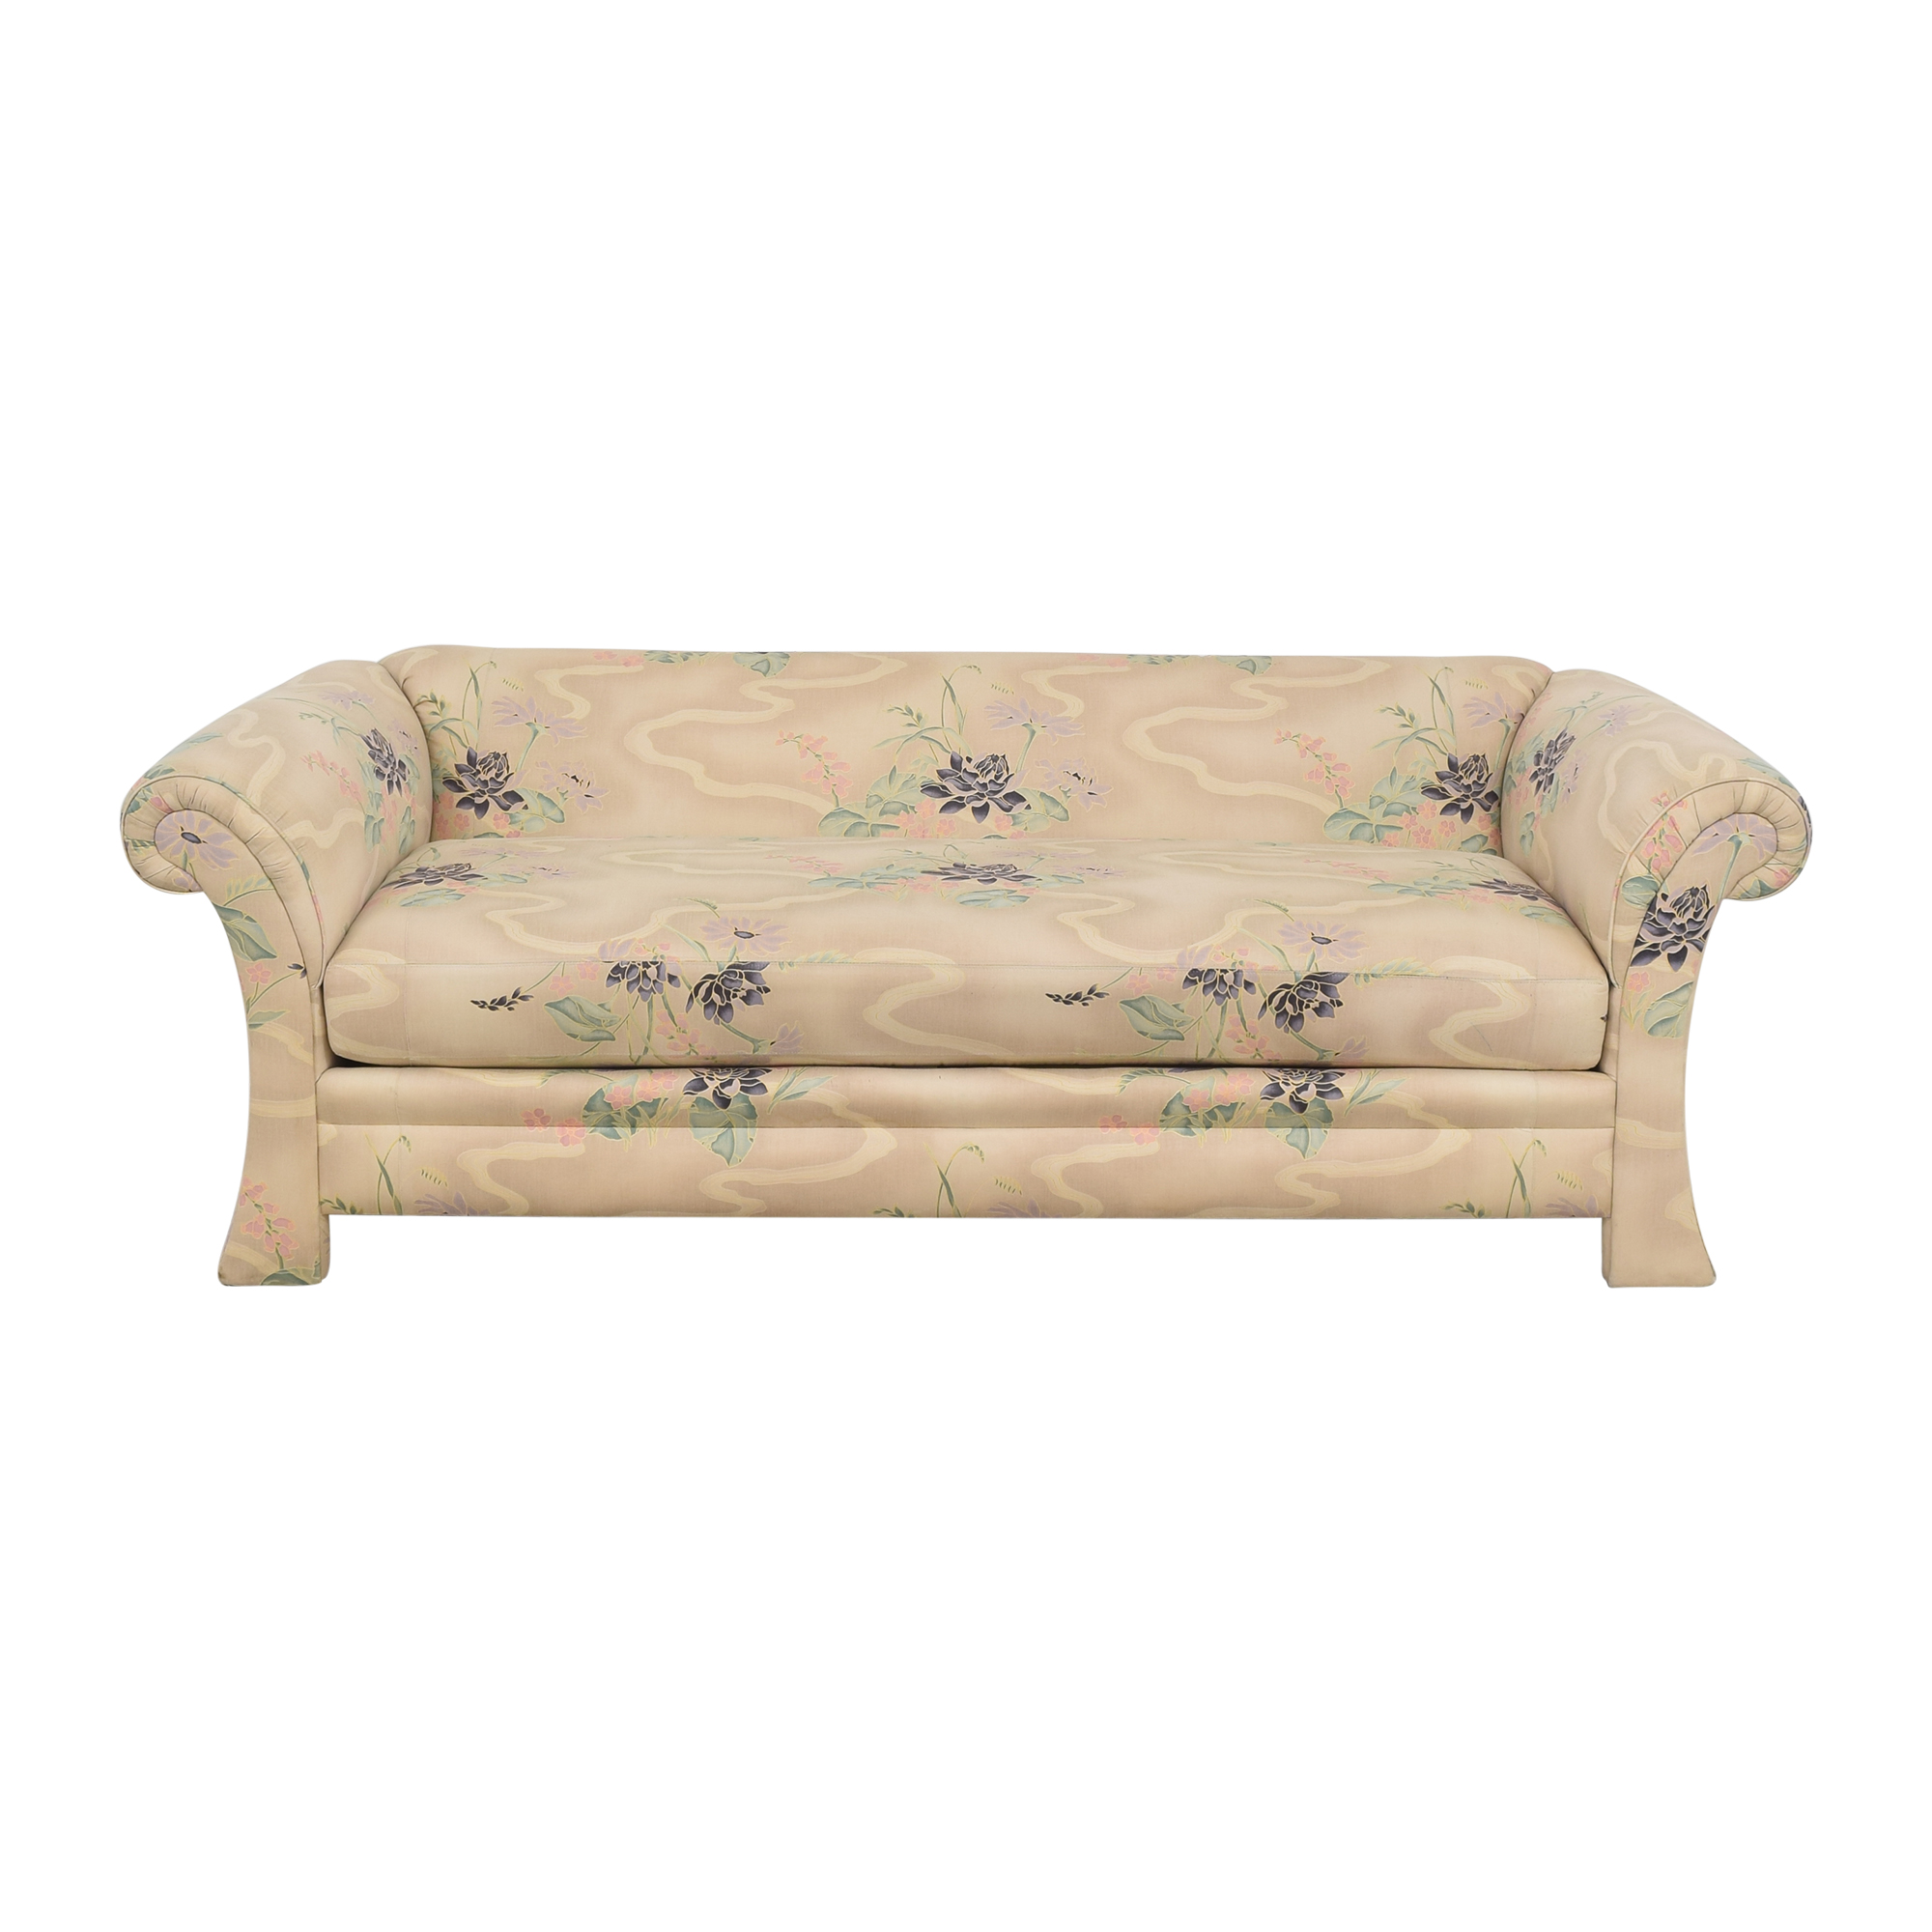 Henredon Furniture Henredon Furniture Floral Roll Arm Sofa dimensions